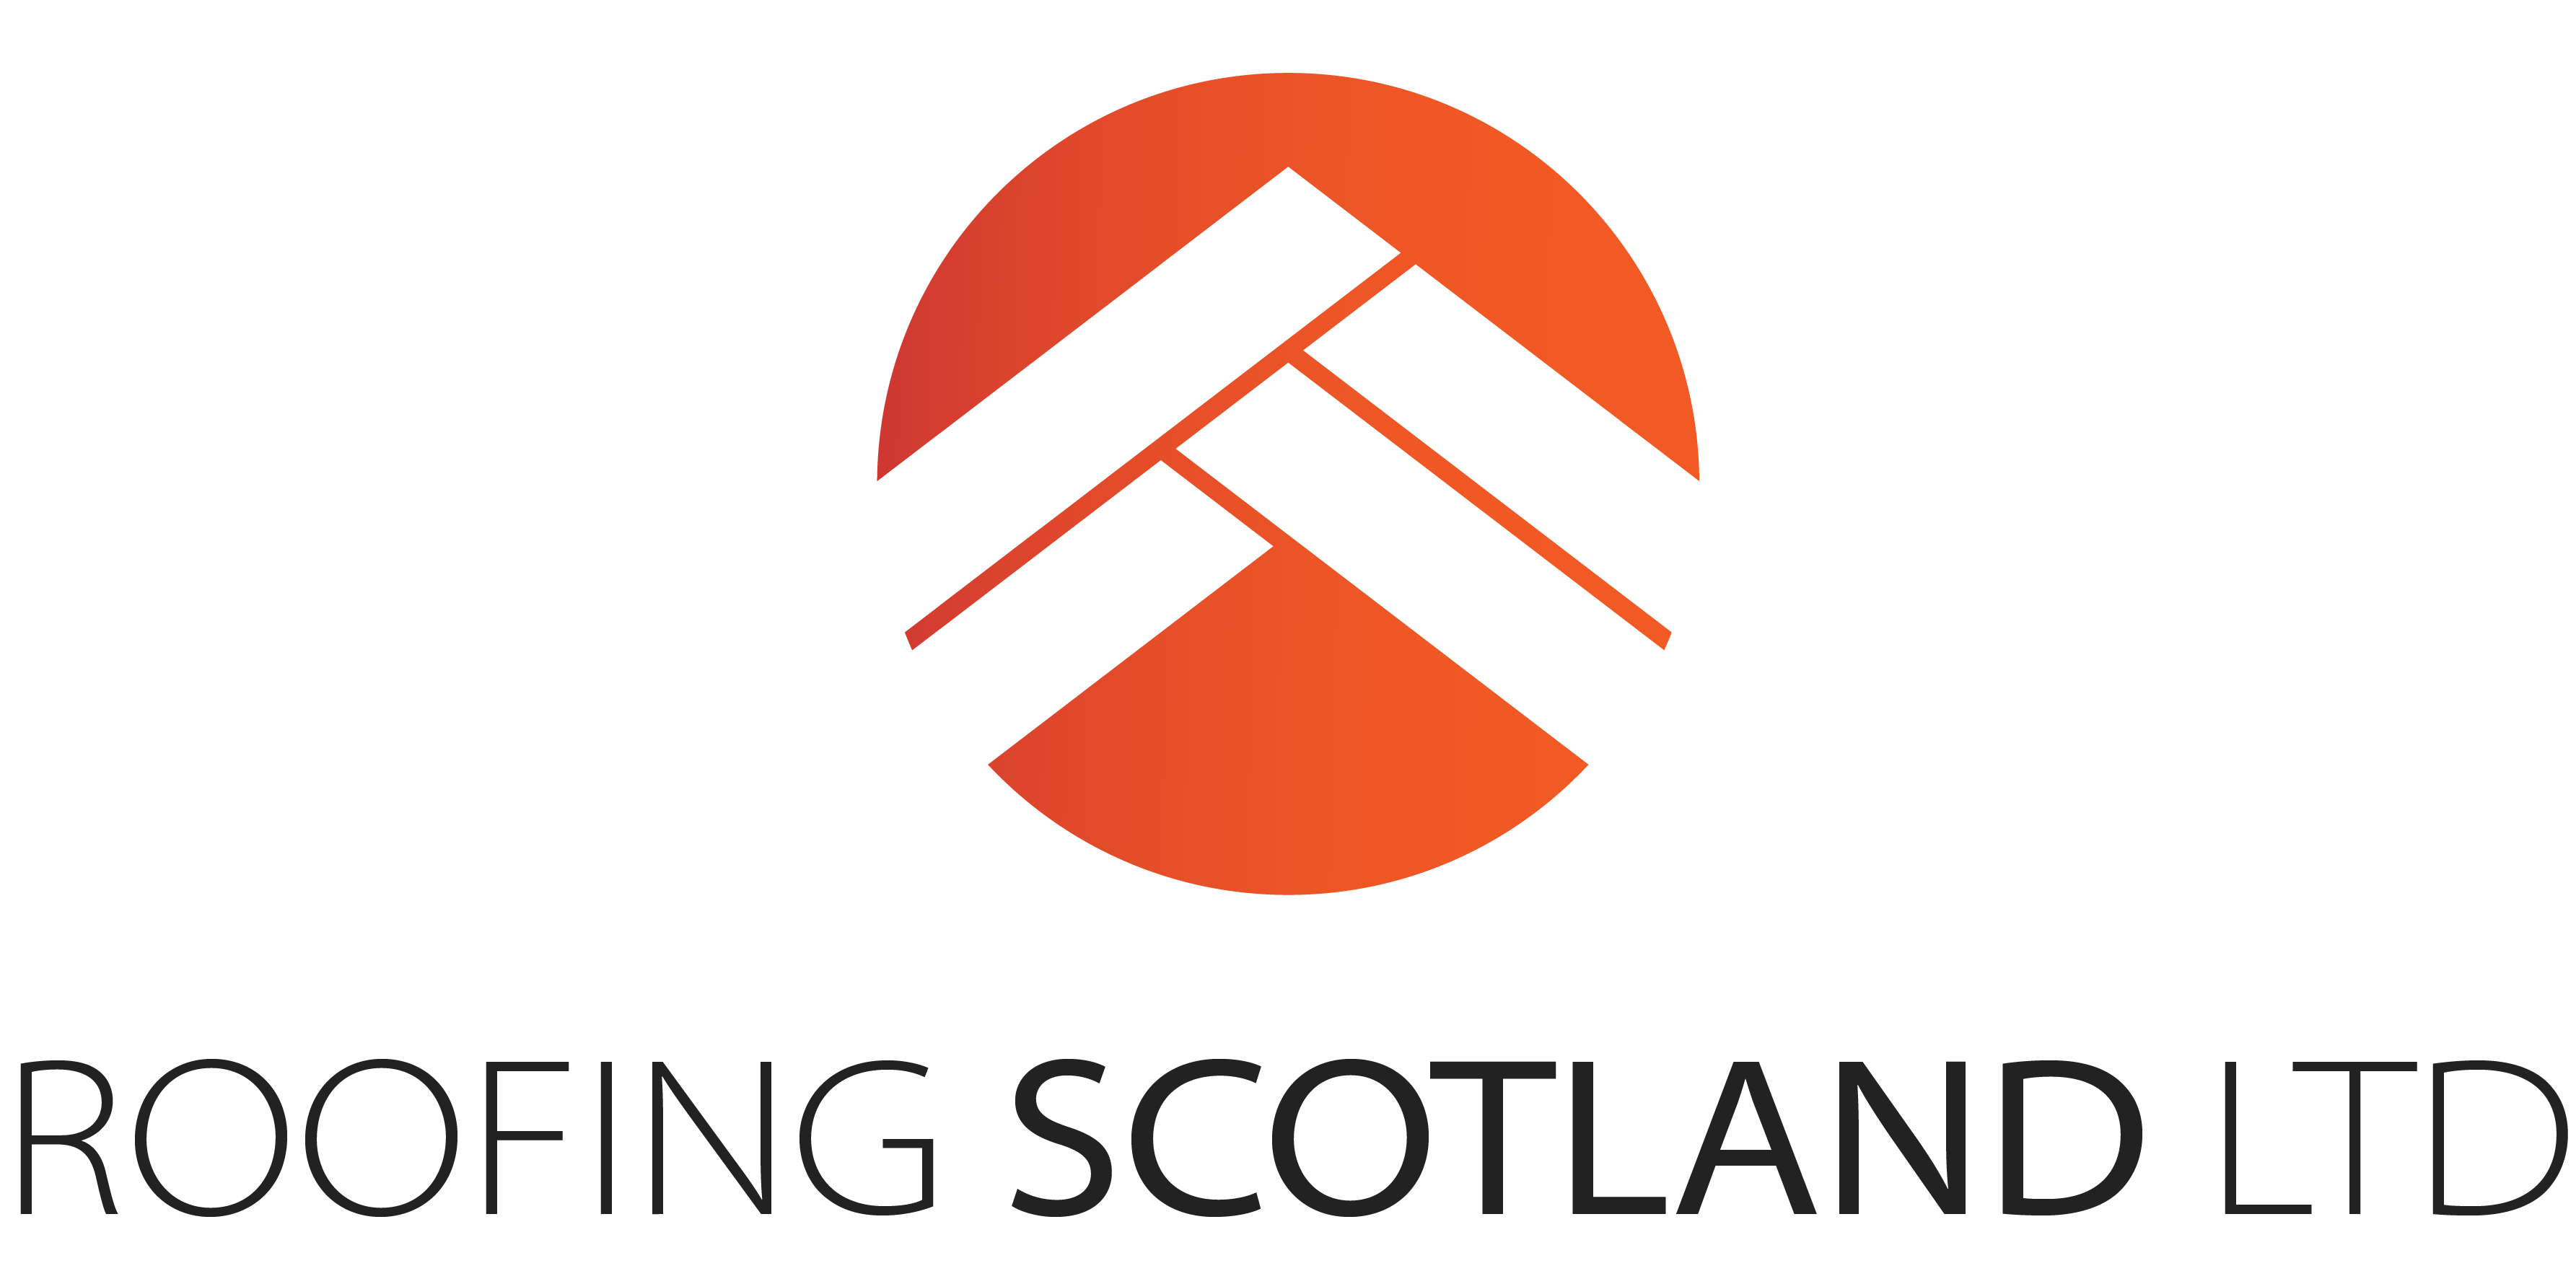 Roofing Scotland Ltd